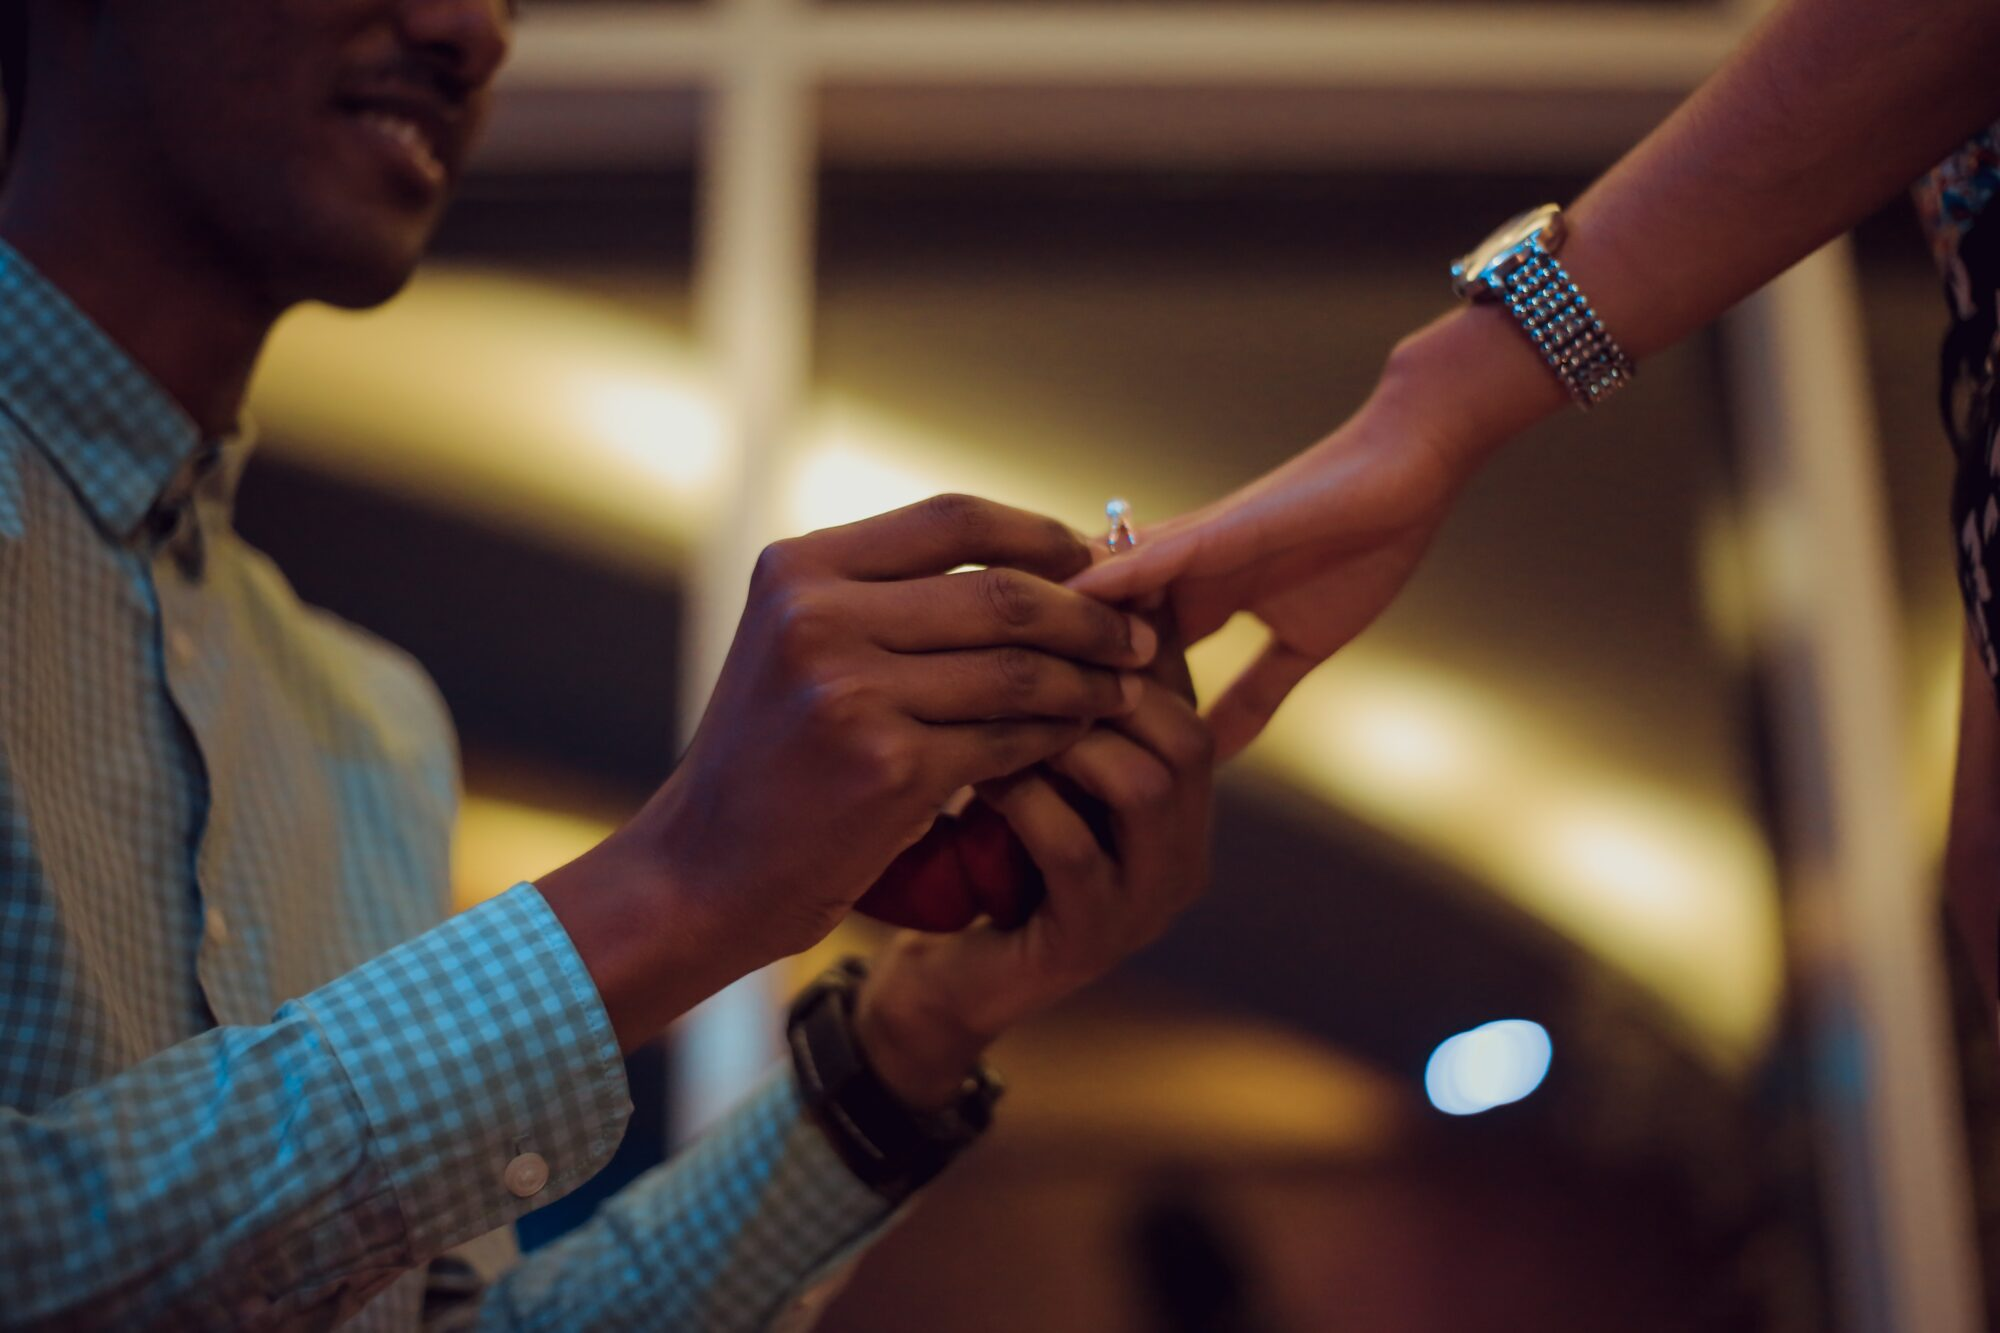 The Dos and Don'ts for Choosing an Engagement Ring